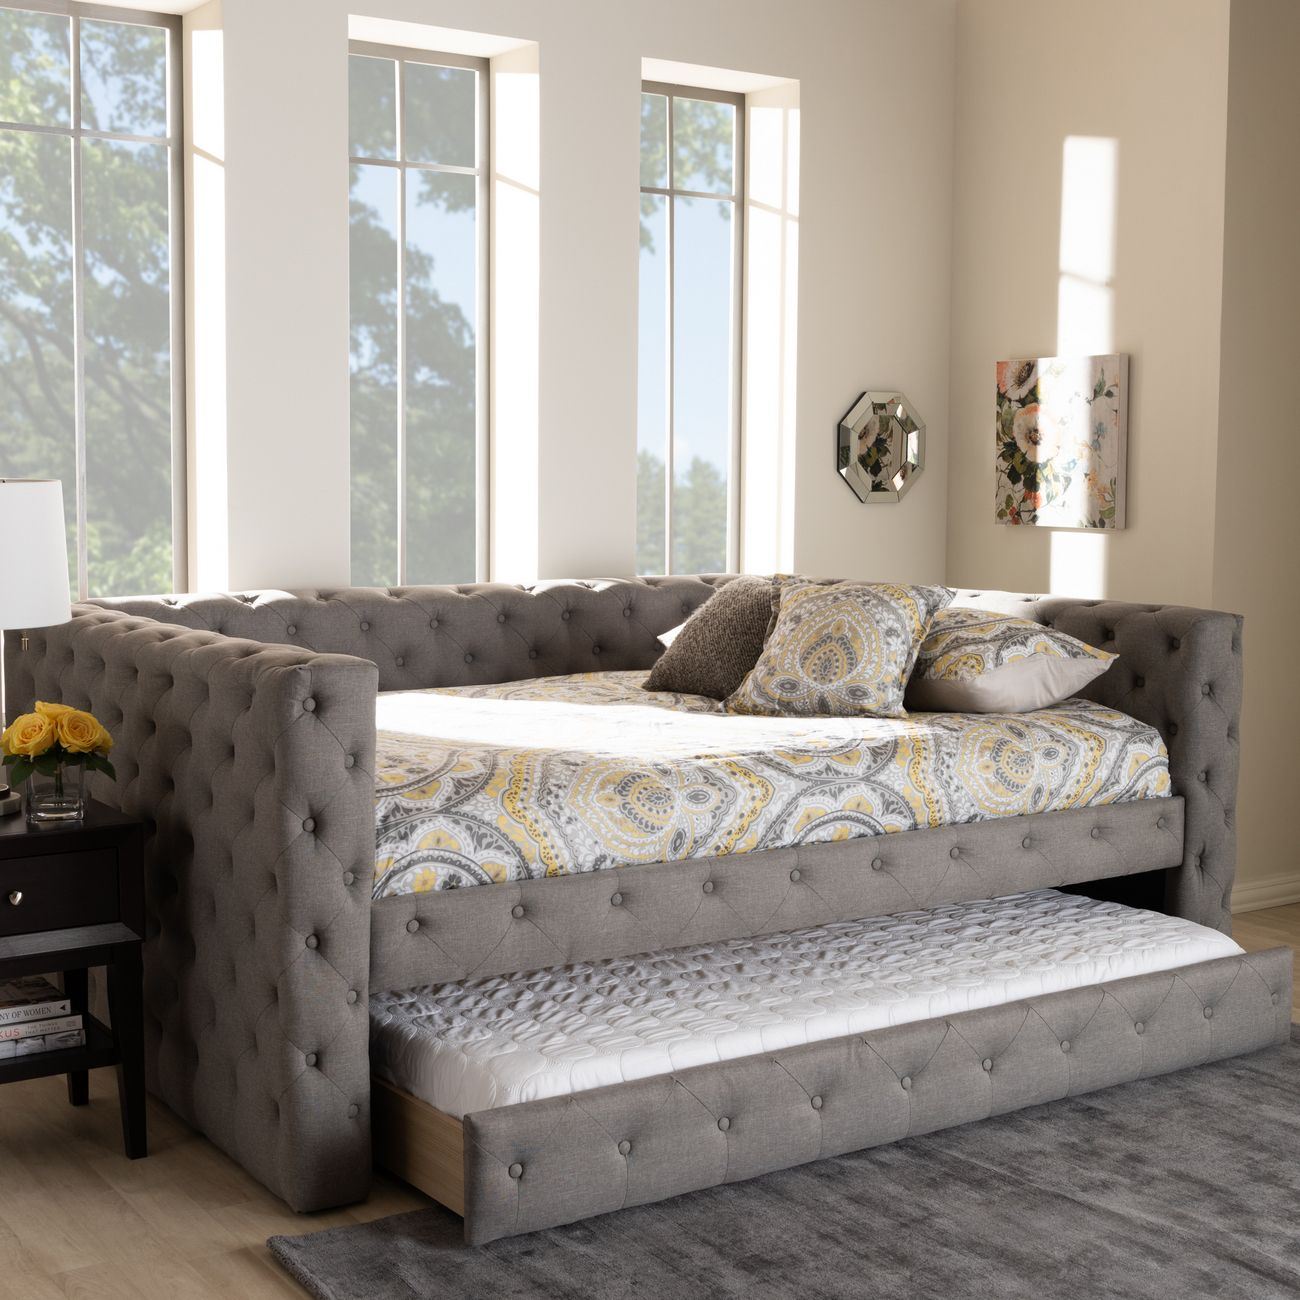 Baxton Studio Anabella Modern Contemporary Grey Fabric Upholstered Full Size Daybed W Trundle Cf8987 Grey Daybed F T